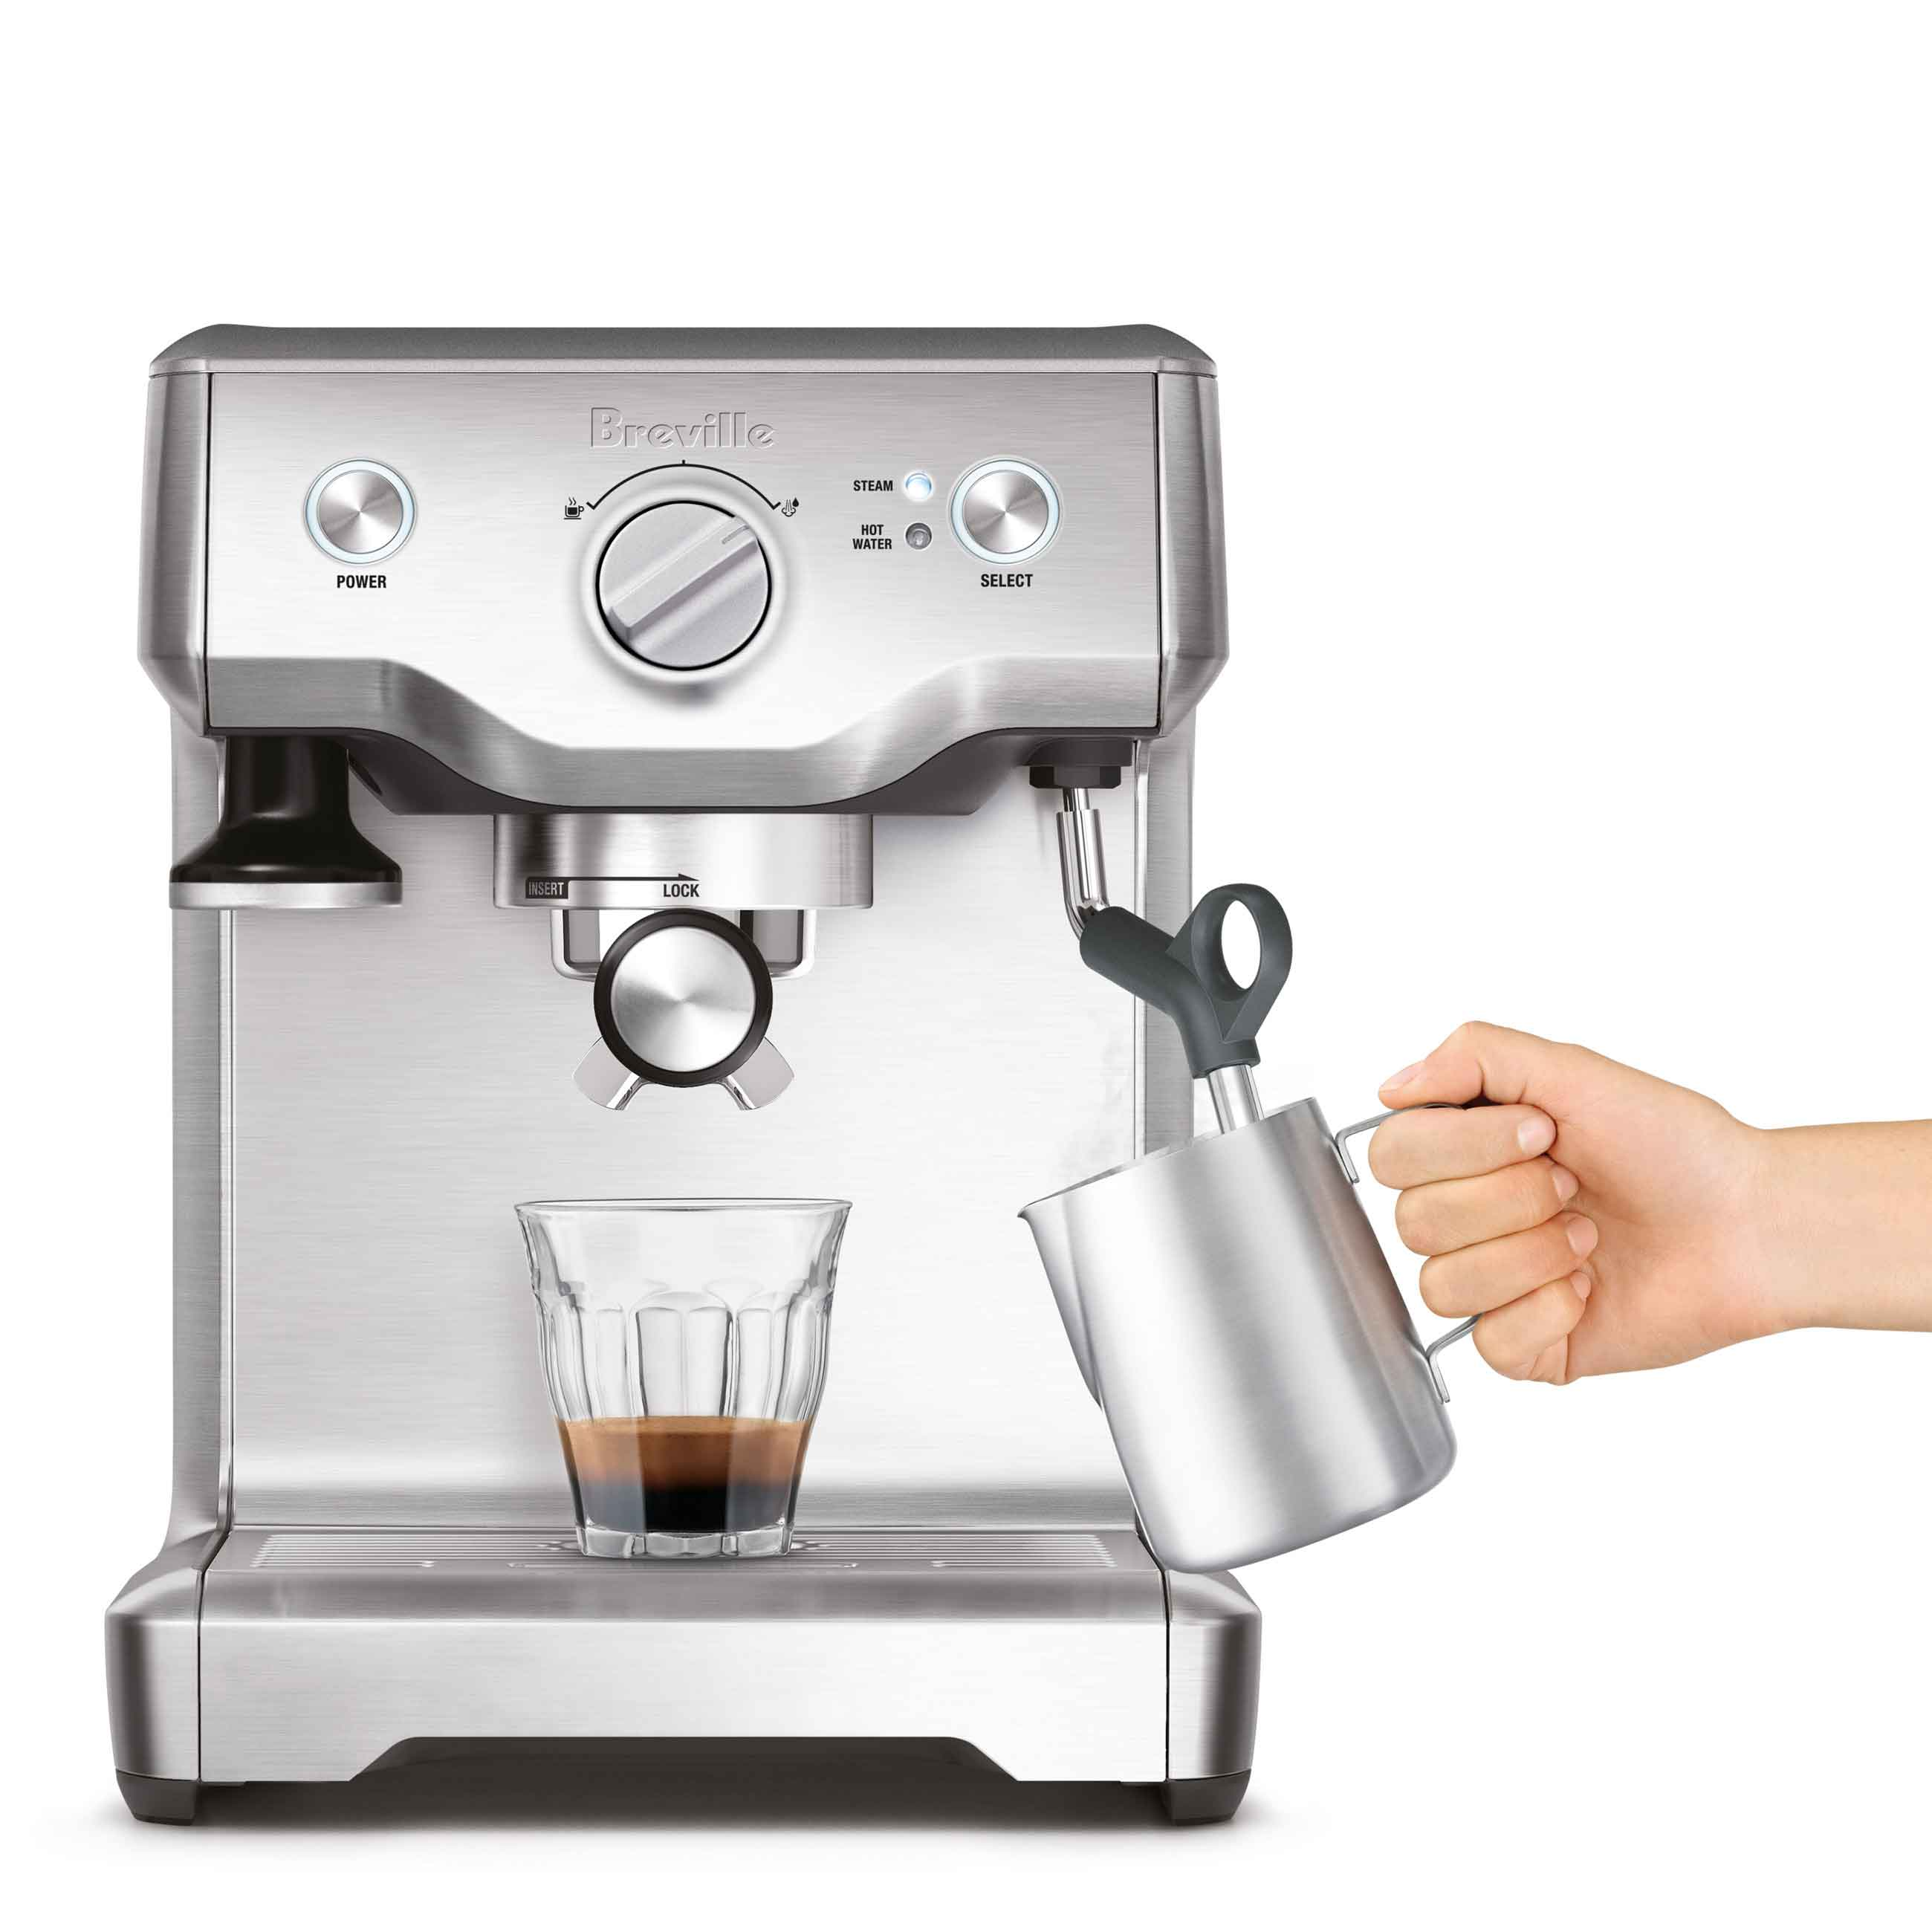 the Duo-Temp™ Pro Espresso in Brushed Stainless Steel with Milk Jug